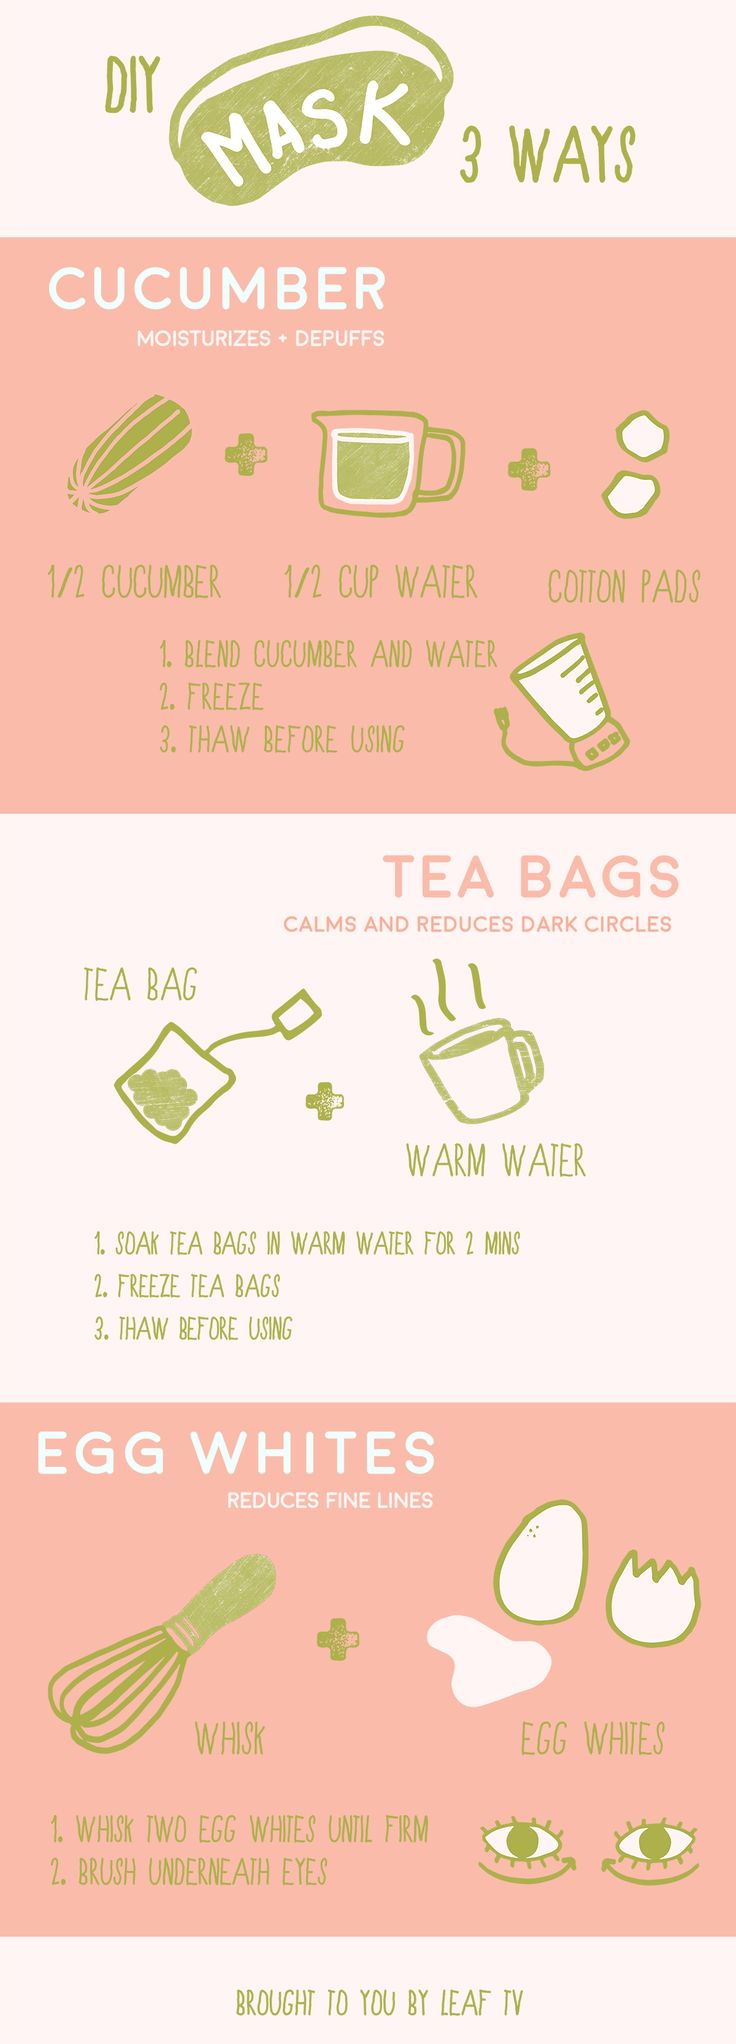 3 DIY Face Masks For A Quick Beauty Fix Infographic